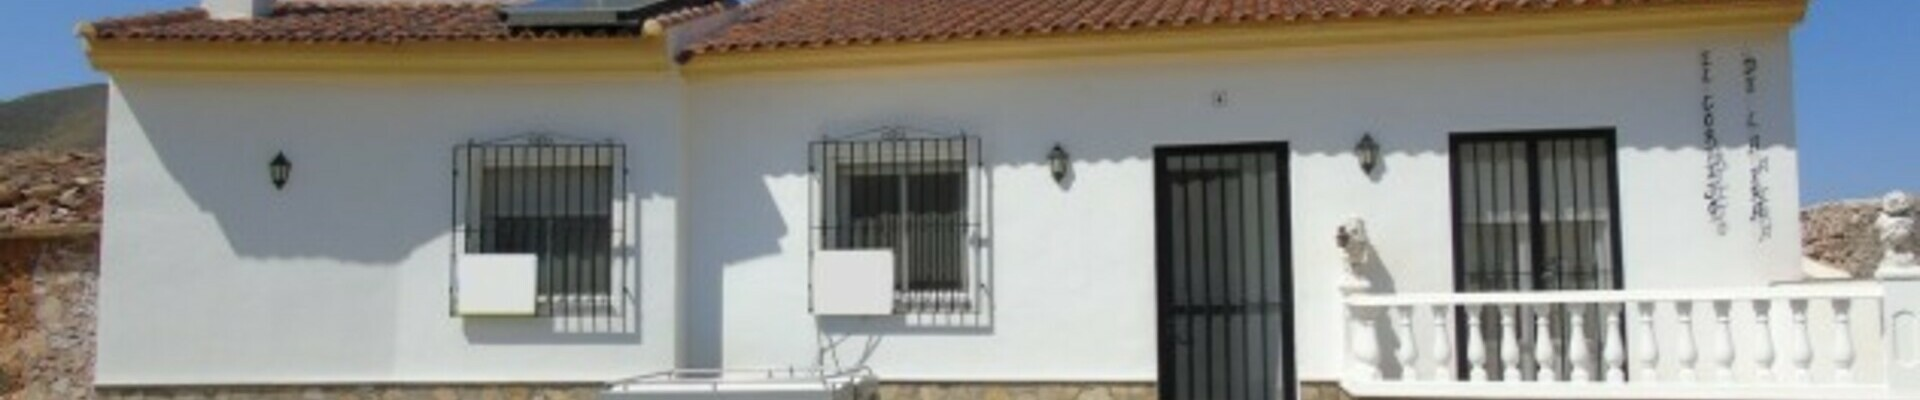 AF644: 3 Bedroom Cortijo for Sale